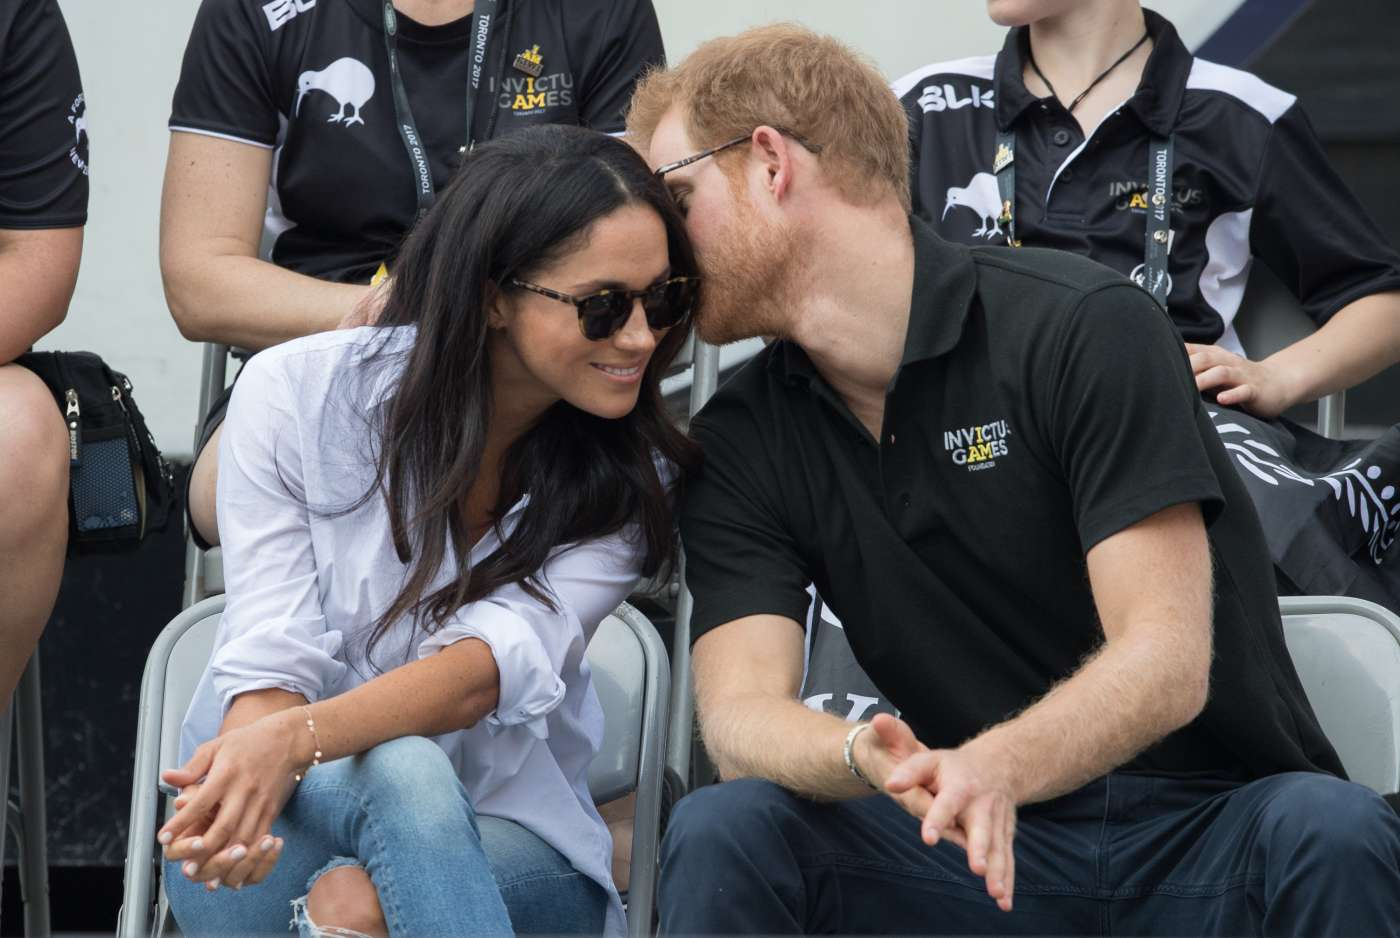 Meghan Markle And Prince Harry Display Serious PDA At Invictus Games